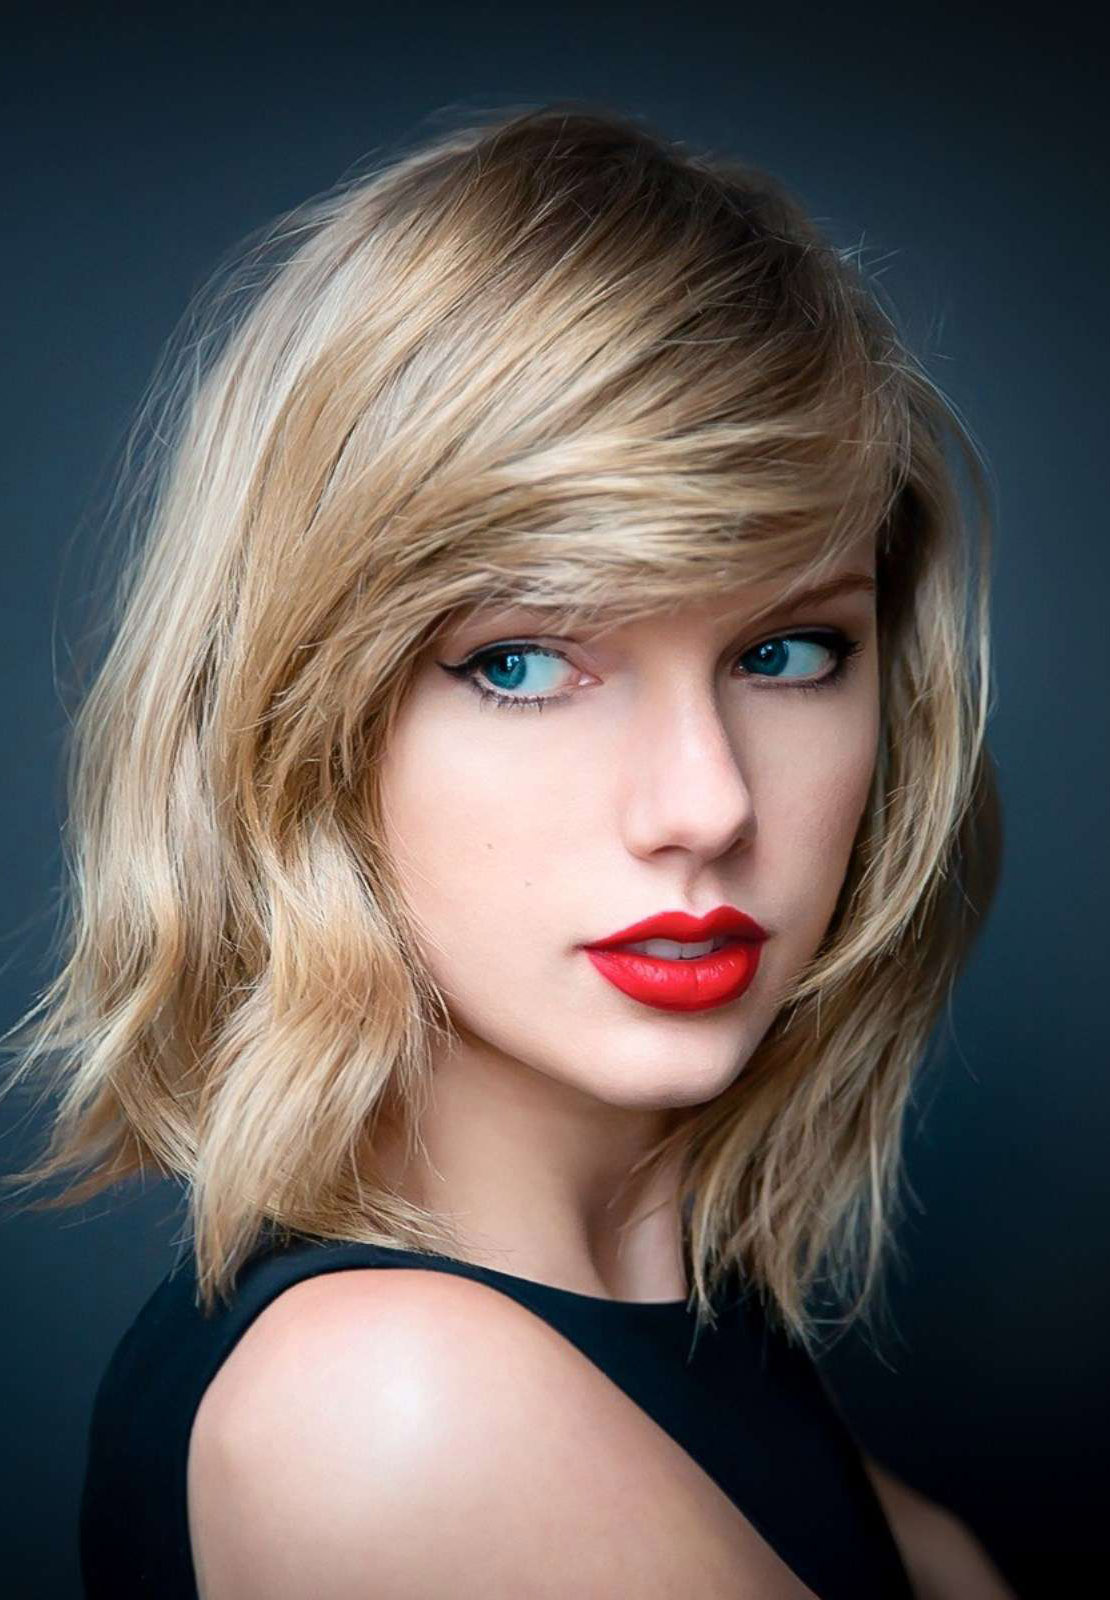 taylor-swift-looking-gorgeous-with-red-lips-iphone-hd-photos-pic